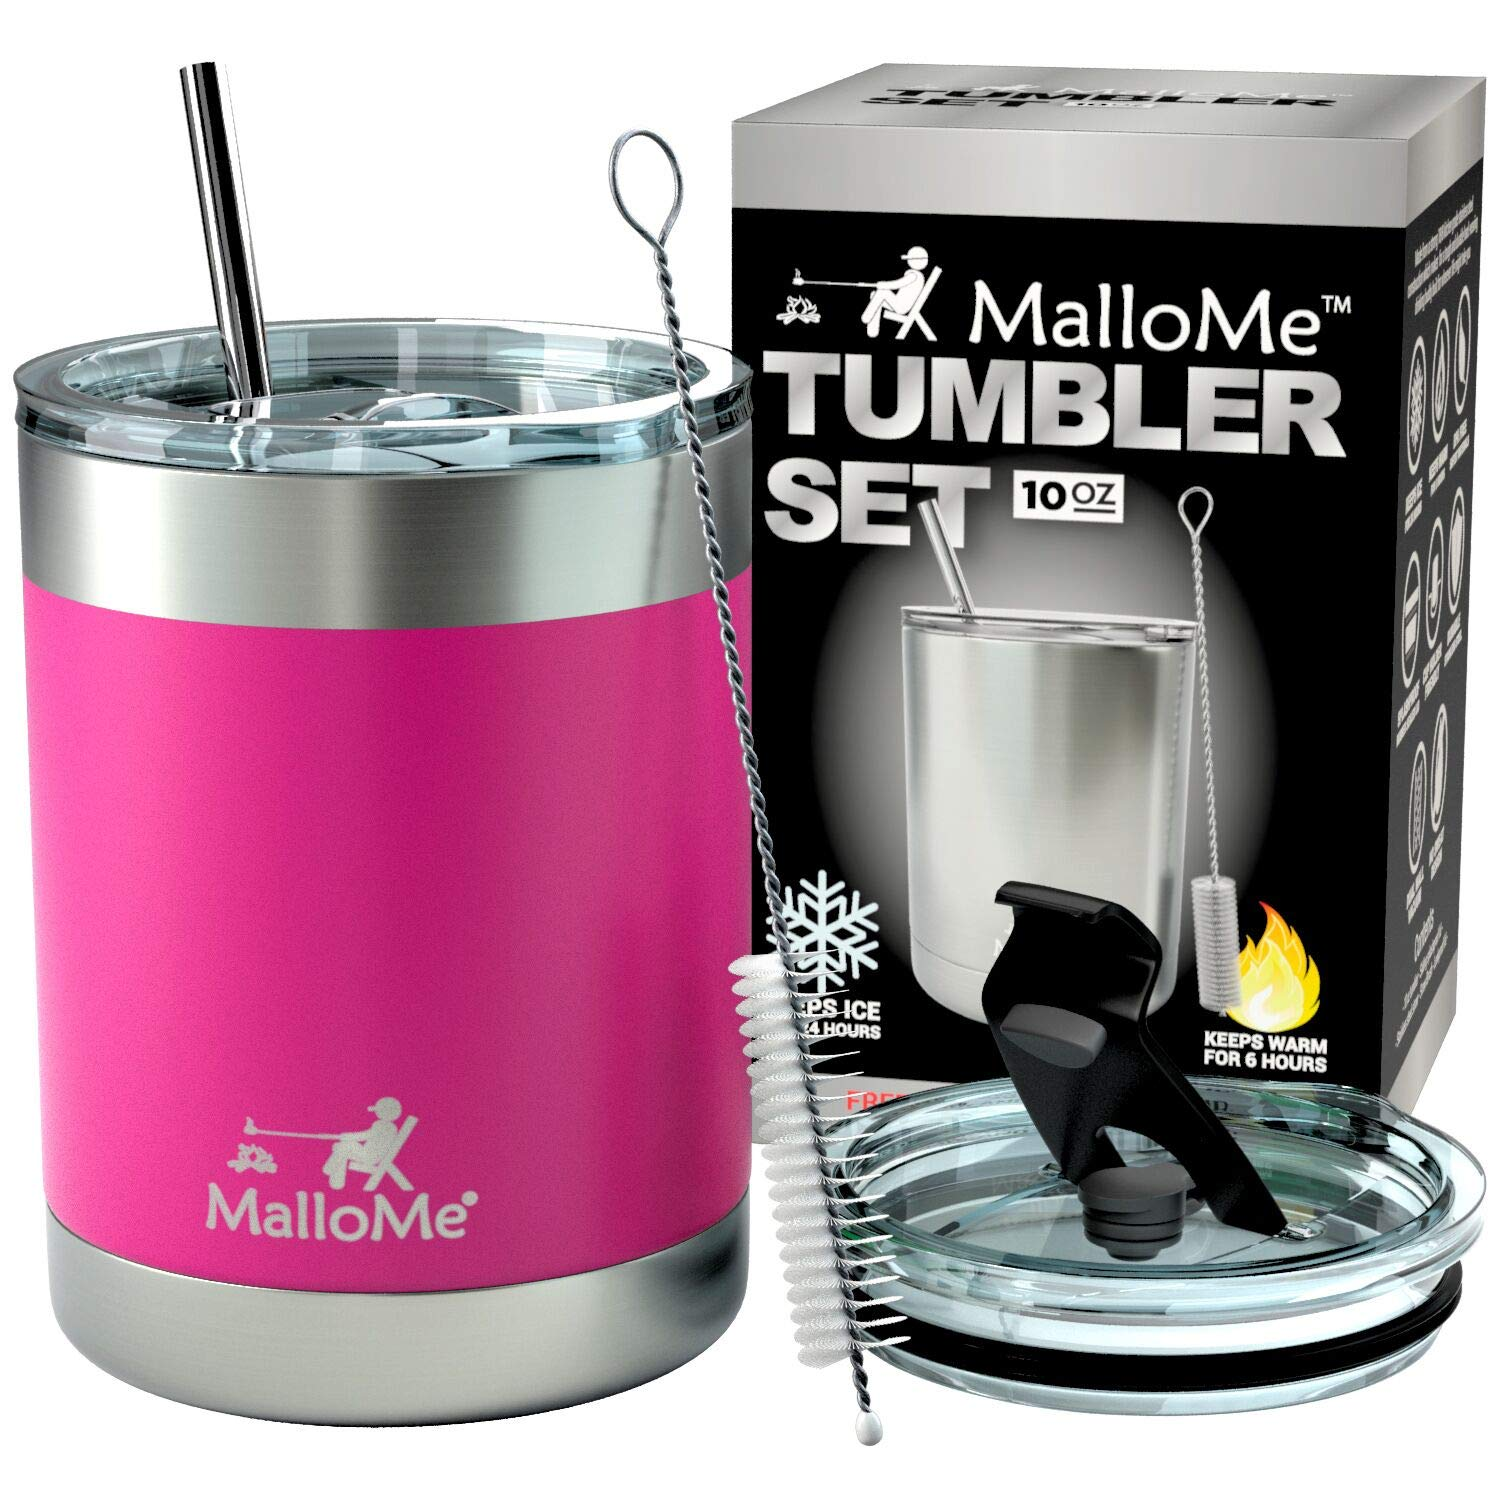 MalloMe Stainless Steel Vacuum Insulated 5-Piece Tumbler Set, Hot Pink 10 oz